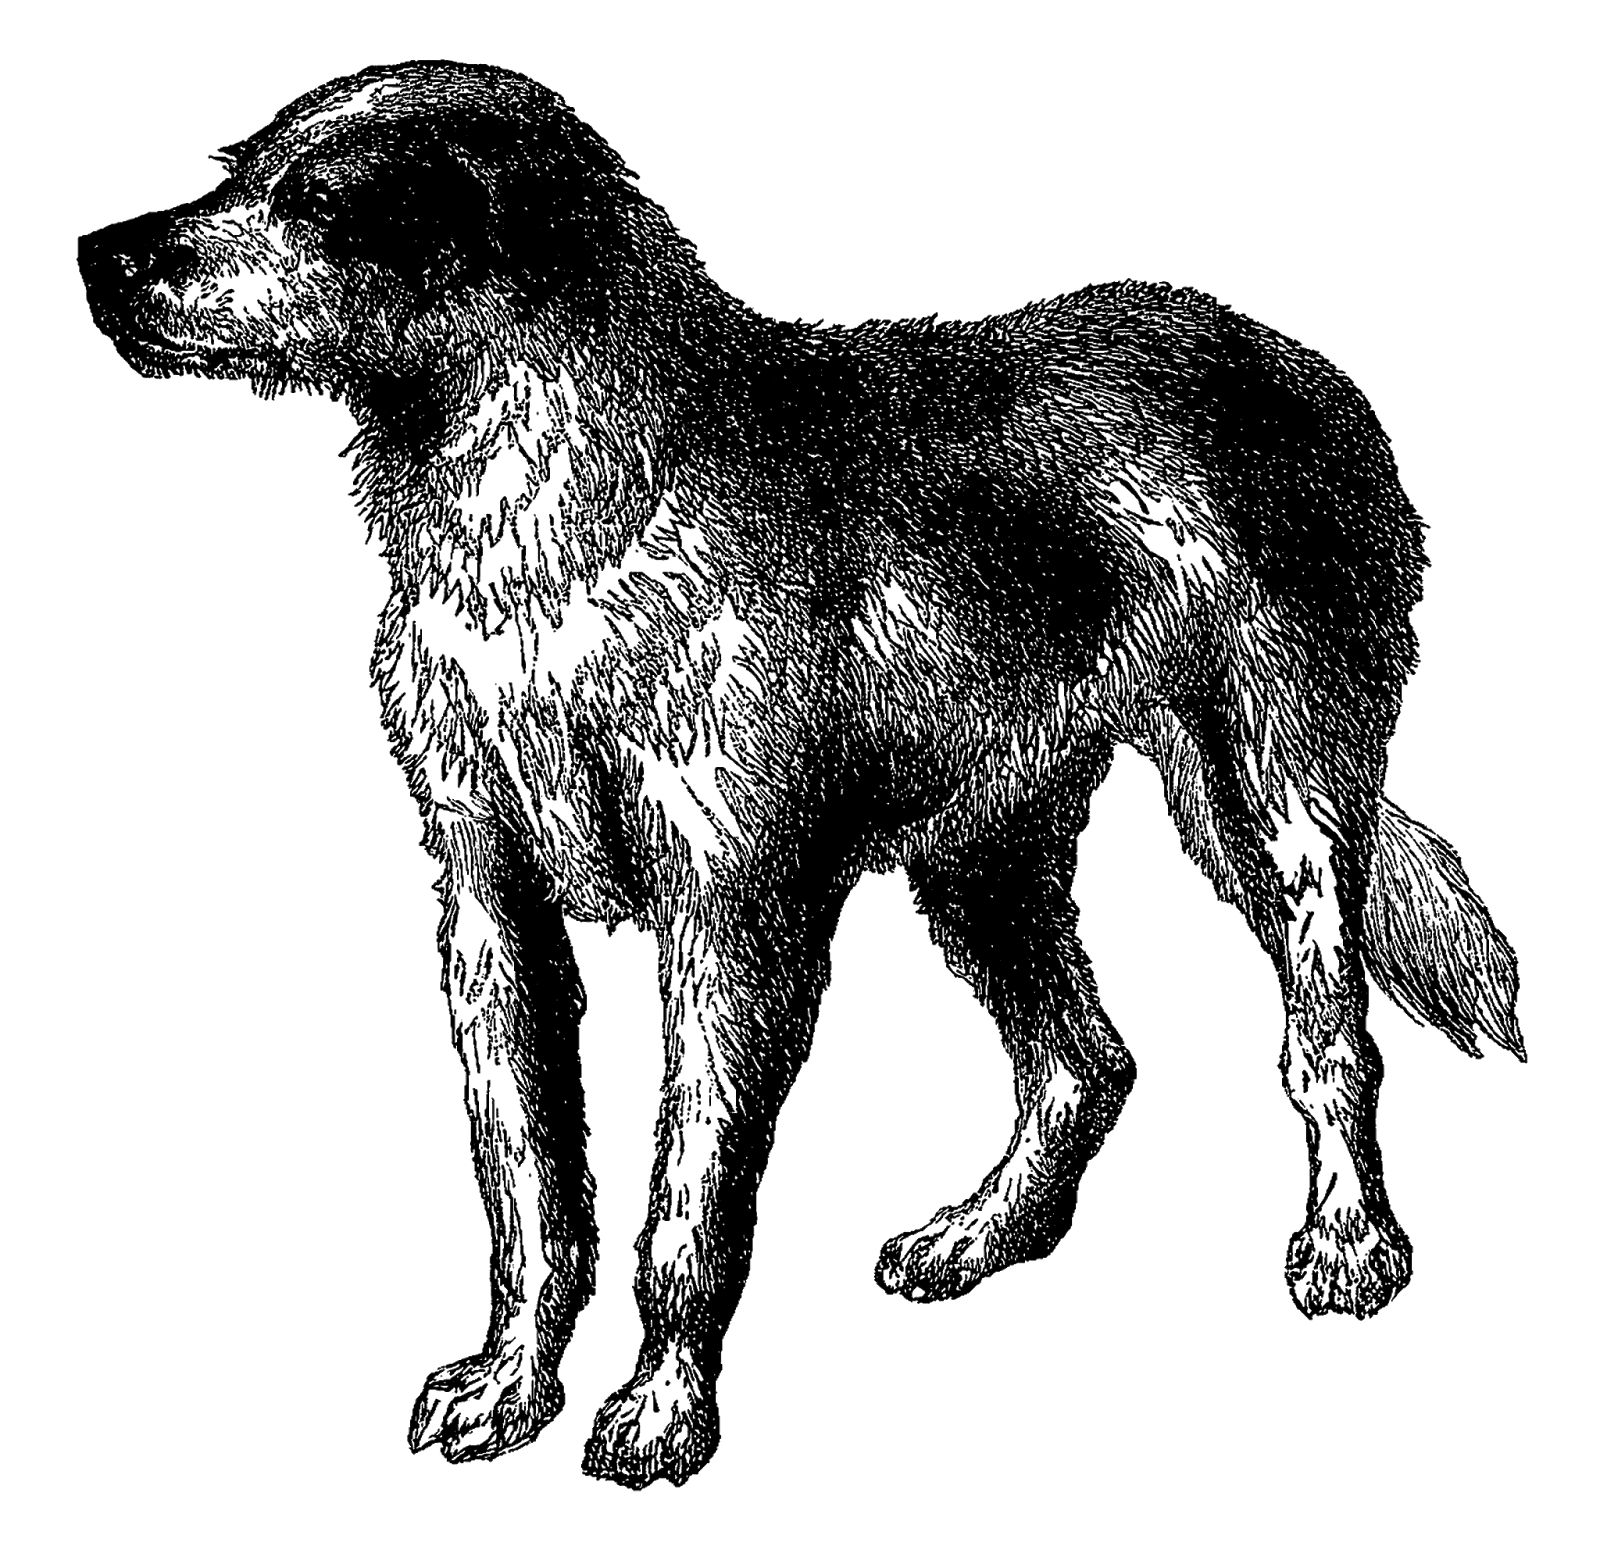 Antique Images: Vintage Dog Breed Boarhound Digital Download.